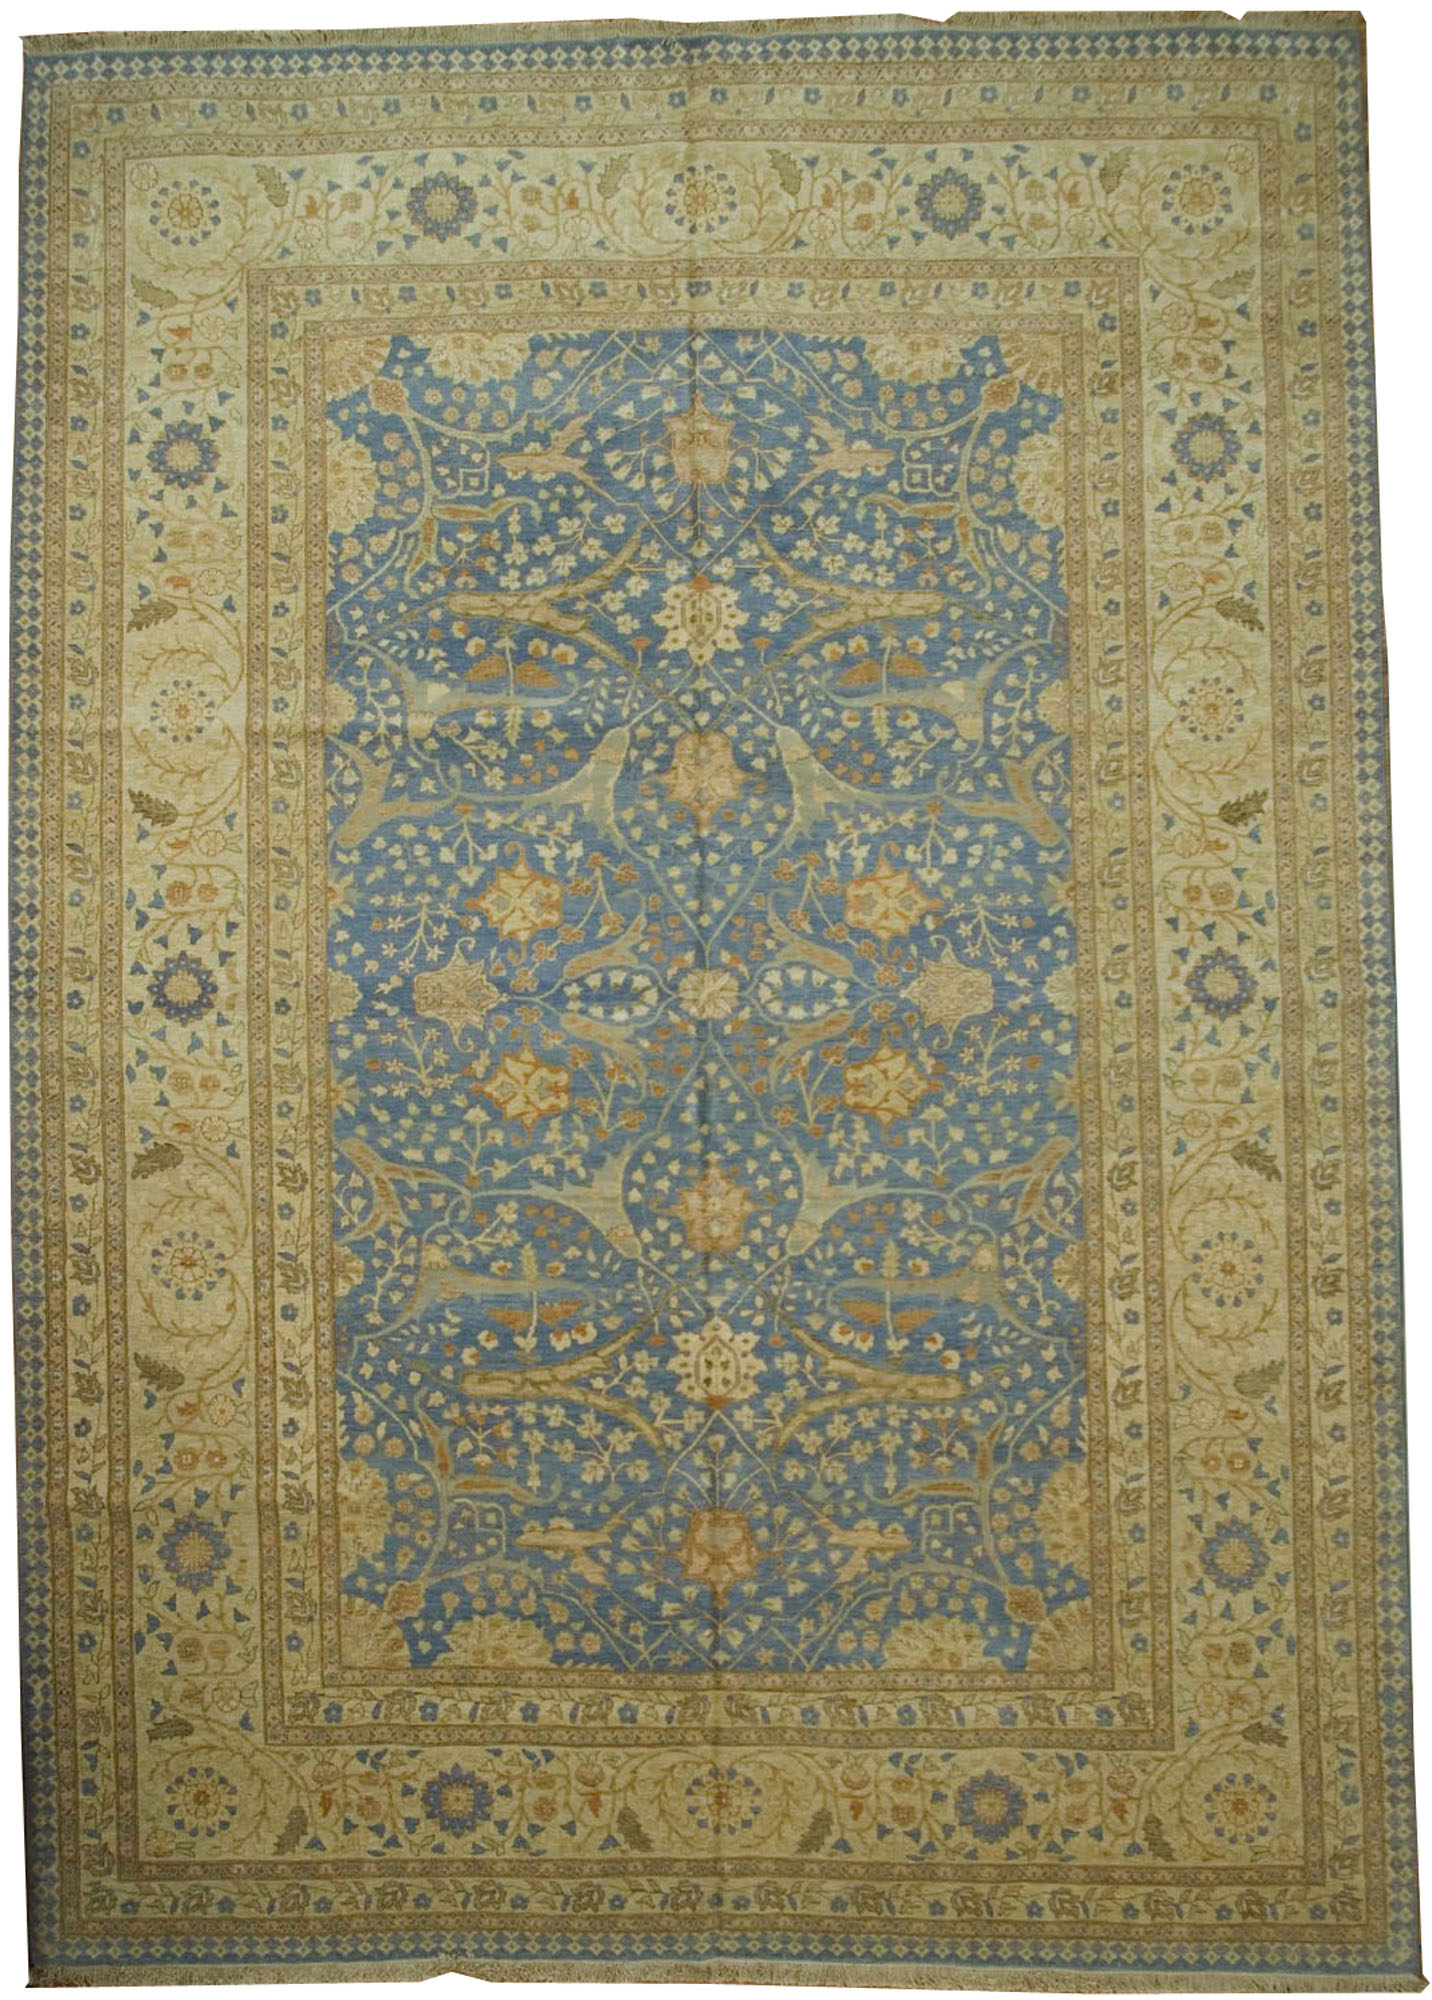 Creative Collection - Tabriz Design Rug